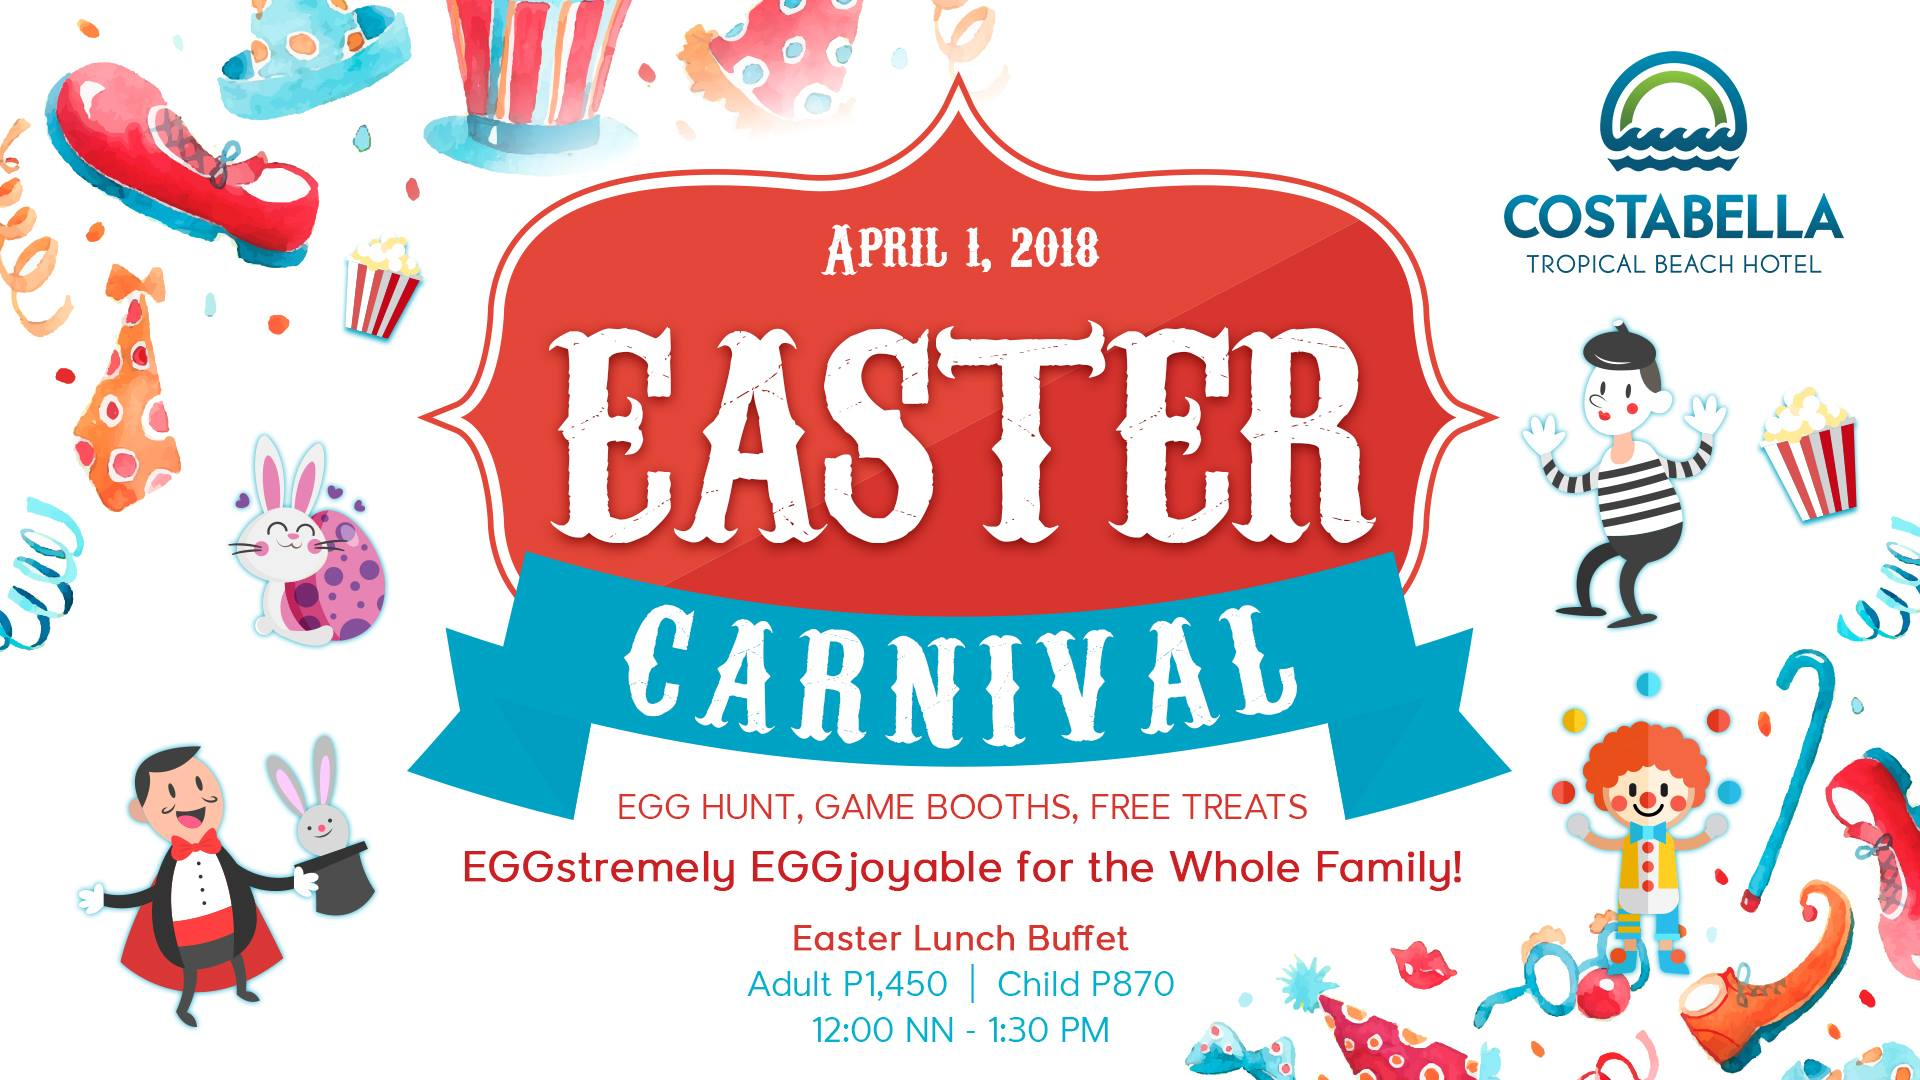 Costabella Resort Easter Egg hunt